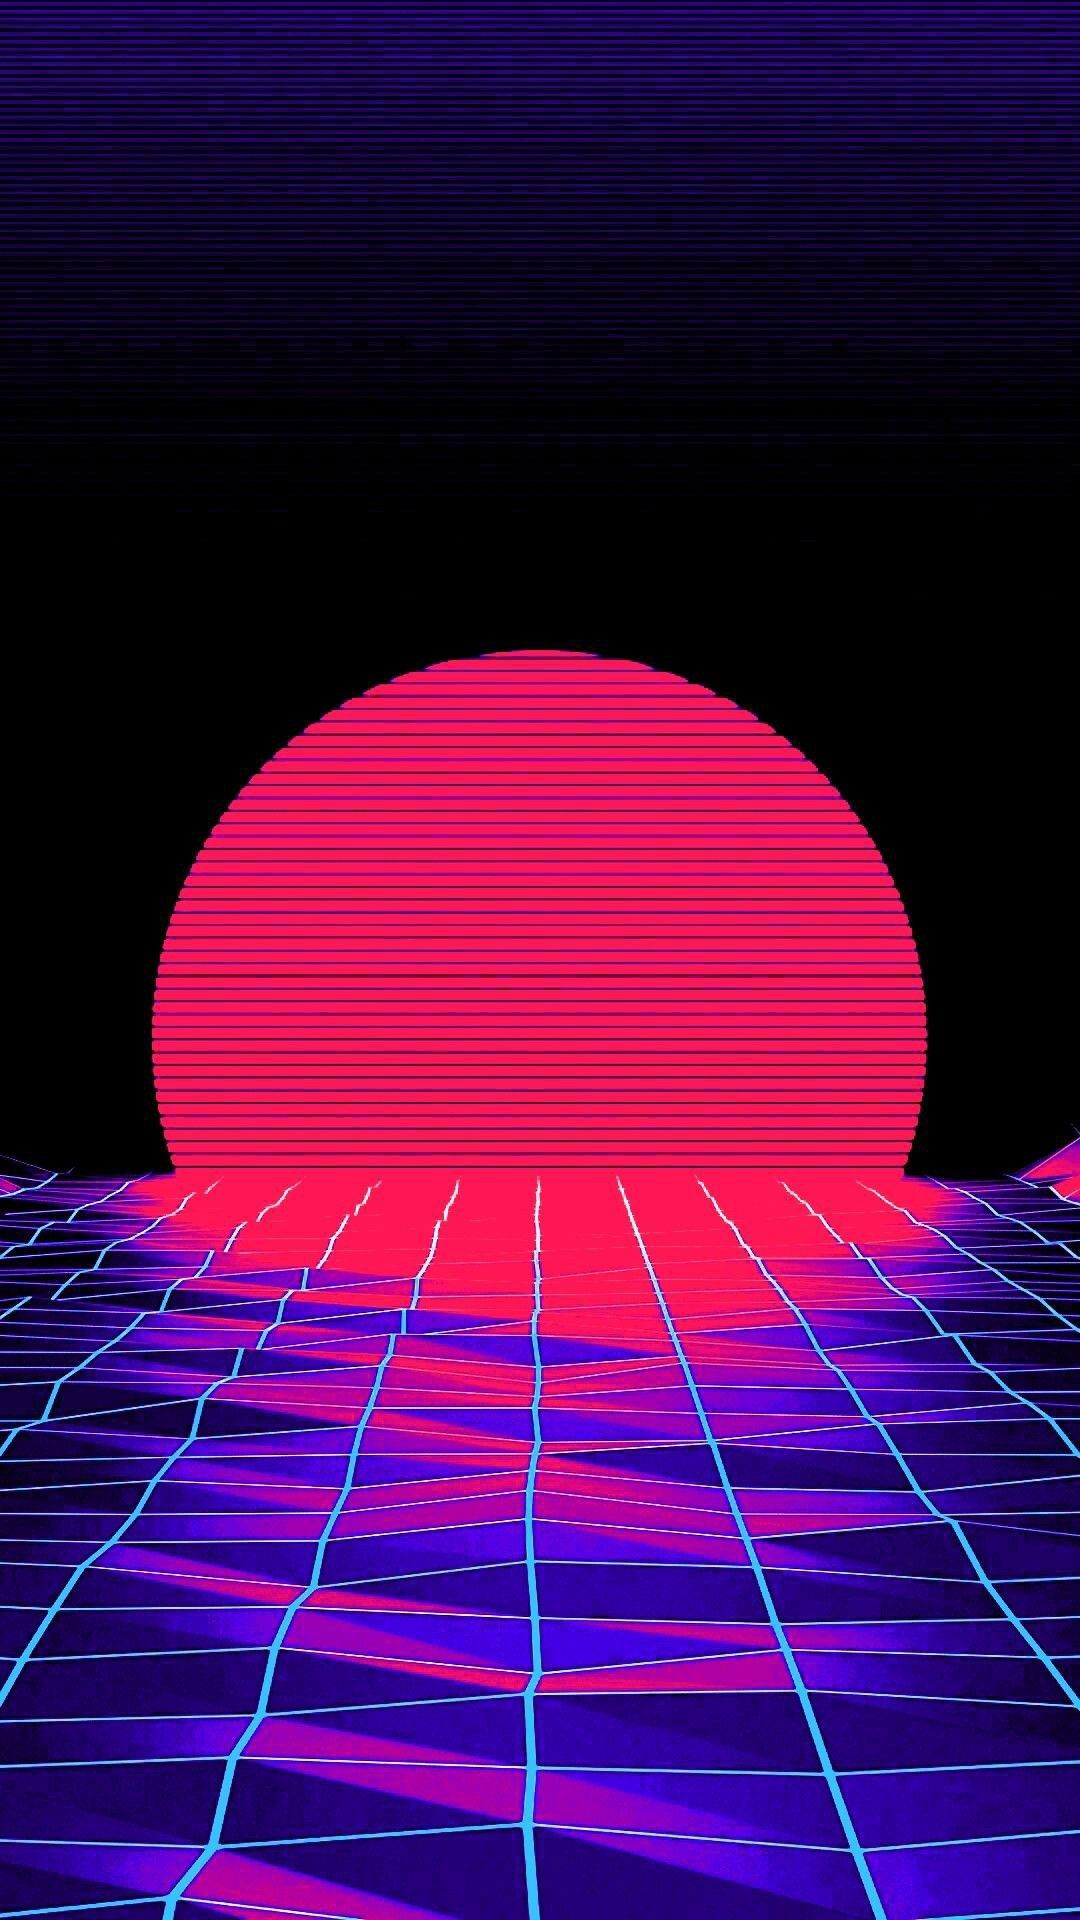 Hypebeast Wallpapers Nixxboi Vaporwave Wallpaper Neon